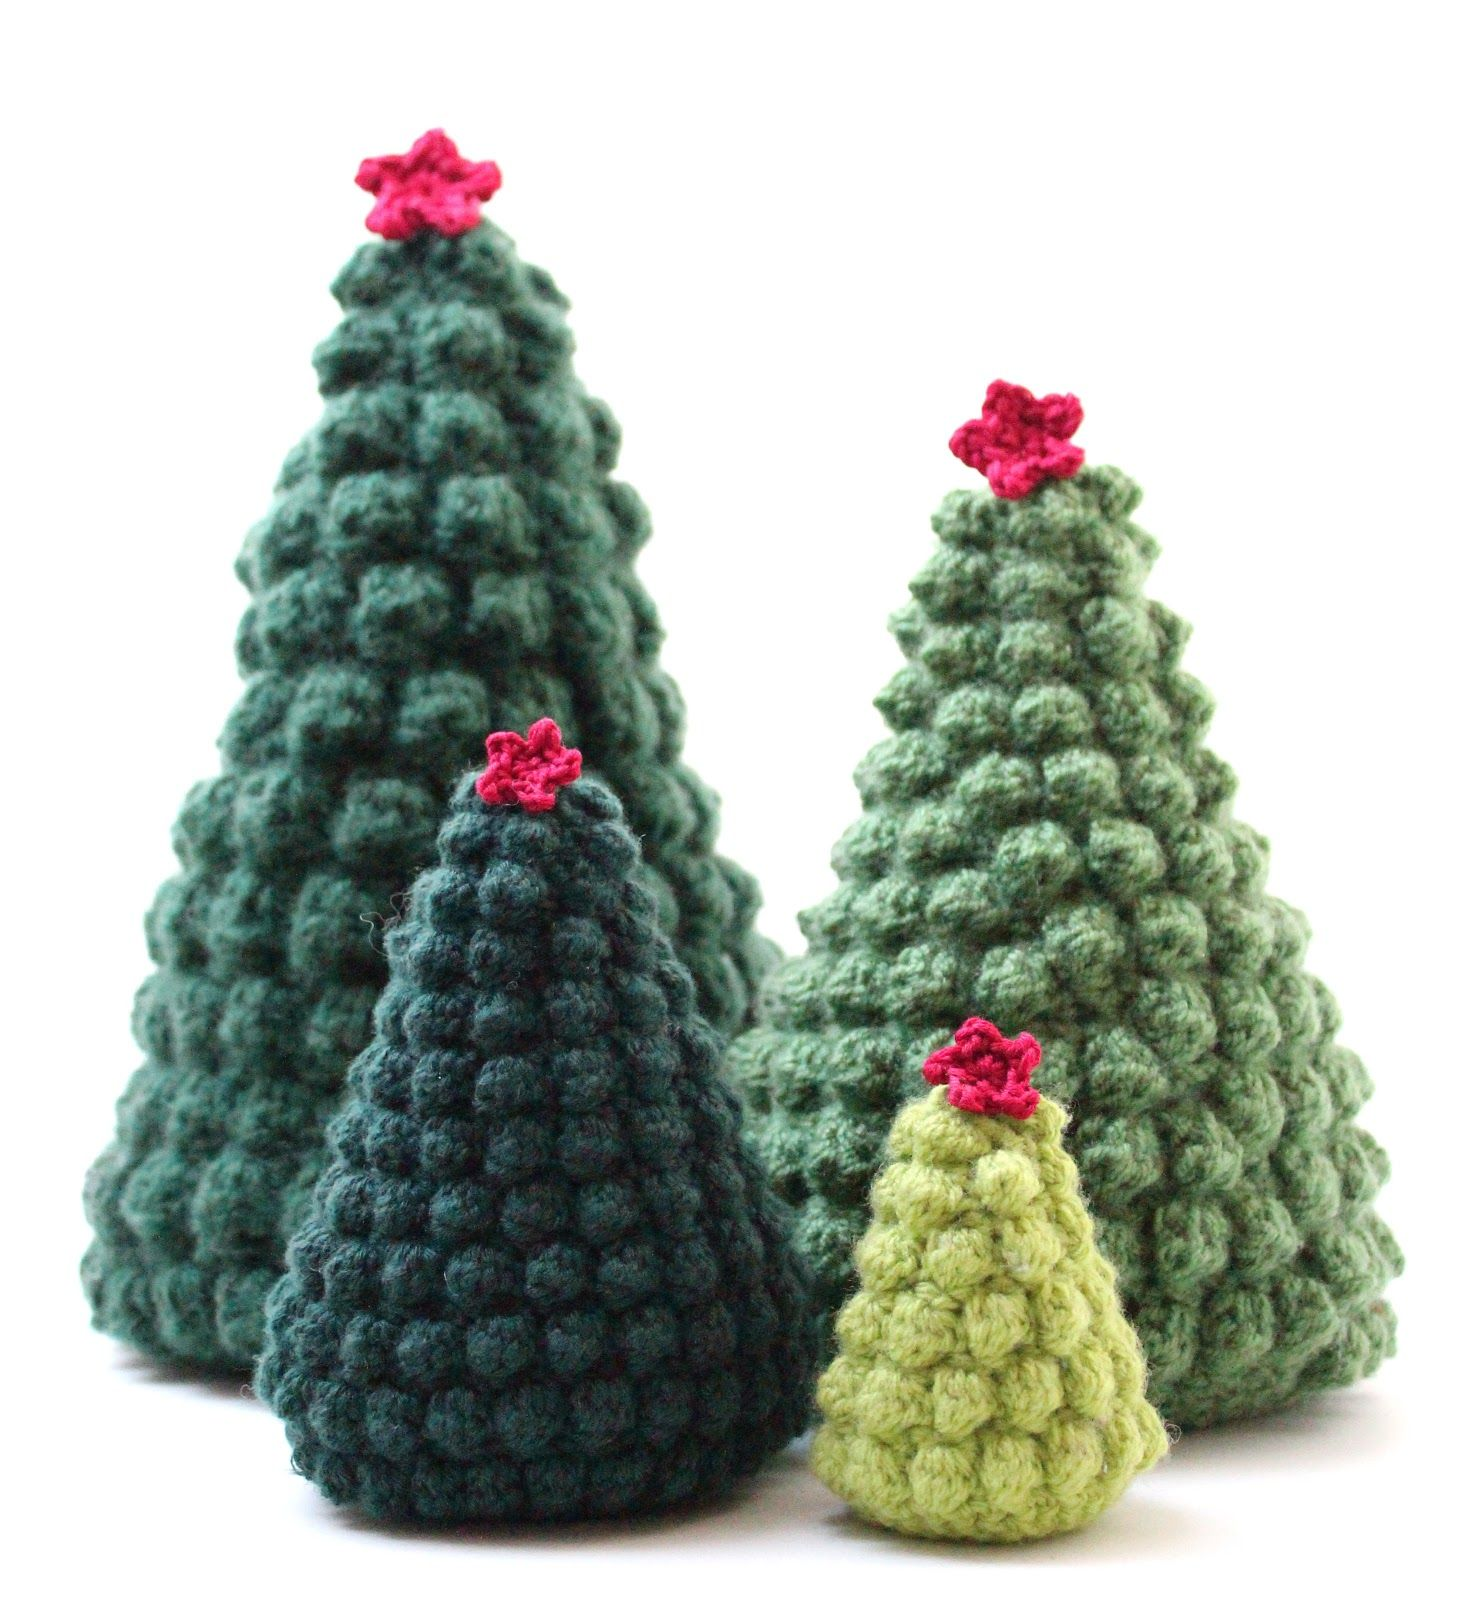 Boys and Bunting: Crocheted Christmas Trees 12.12.12 | Crochet ...